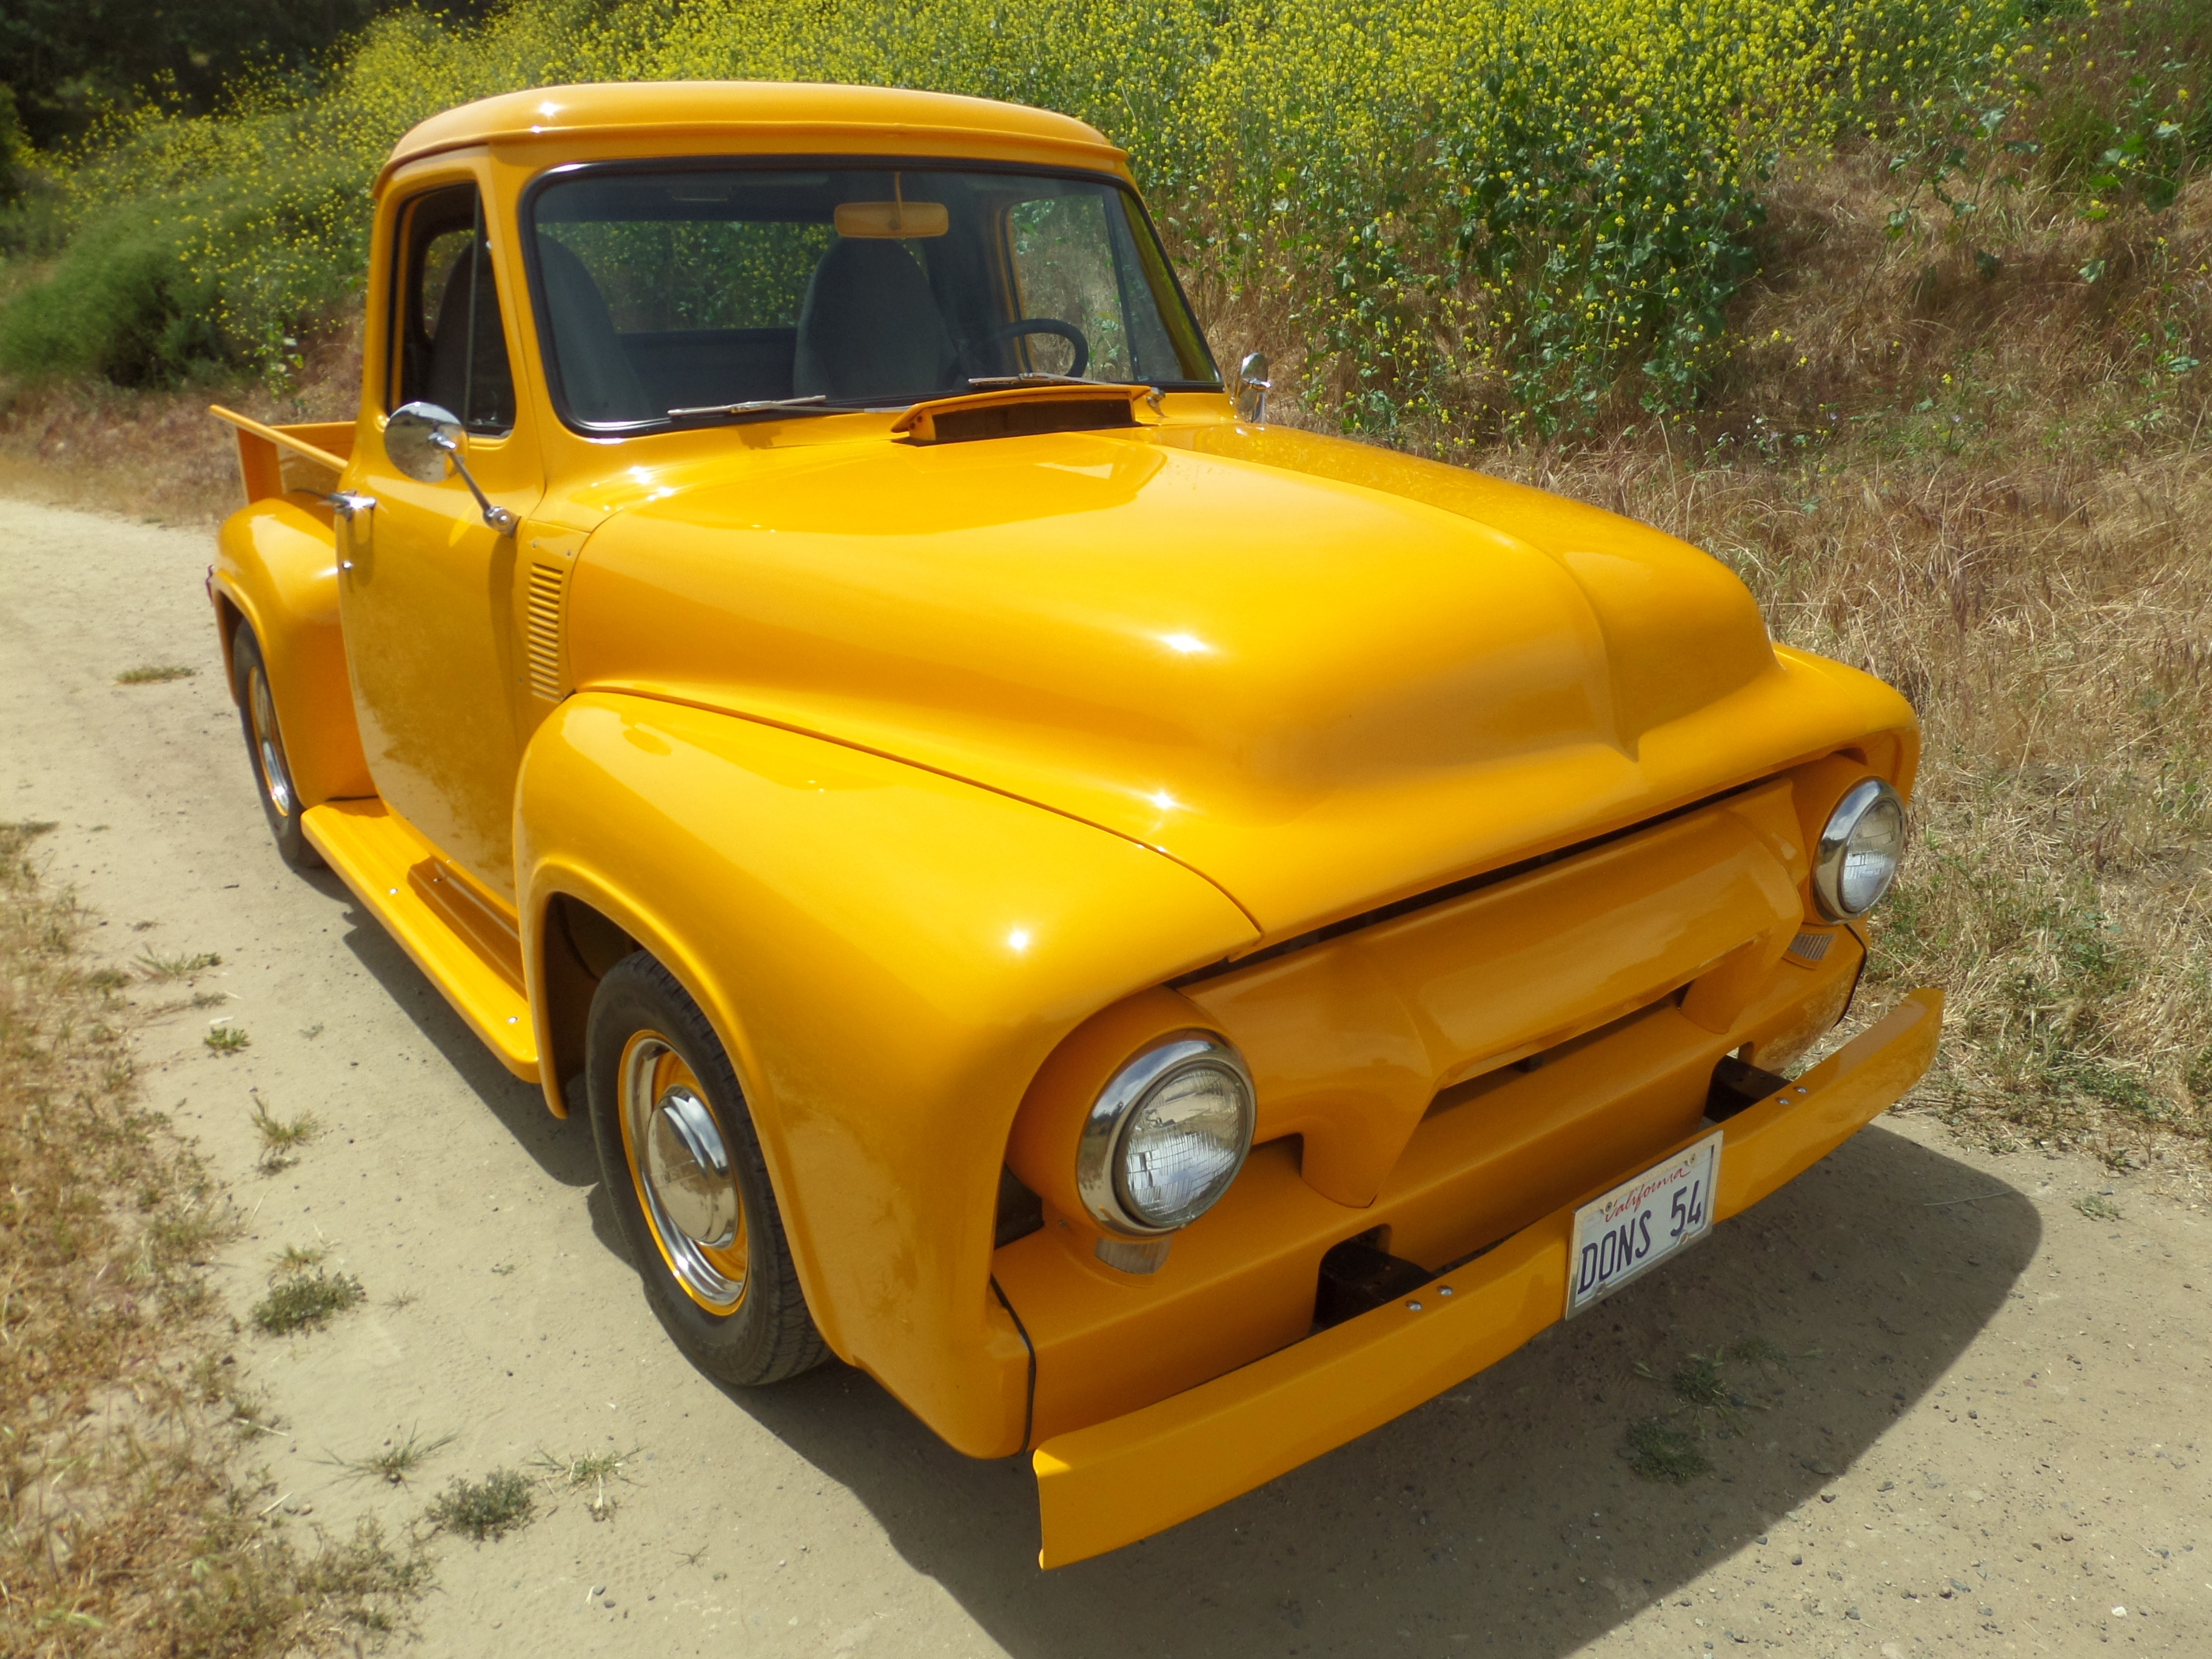 1954 Ford F100 Laguna Classic Cars Automotive Art Long Bed Quality Steel Truck With Power And All The Creature Comforts